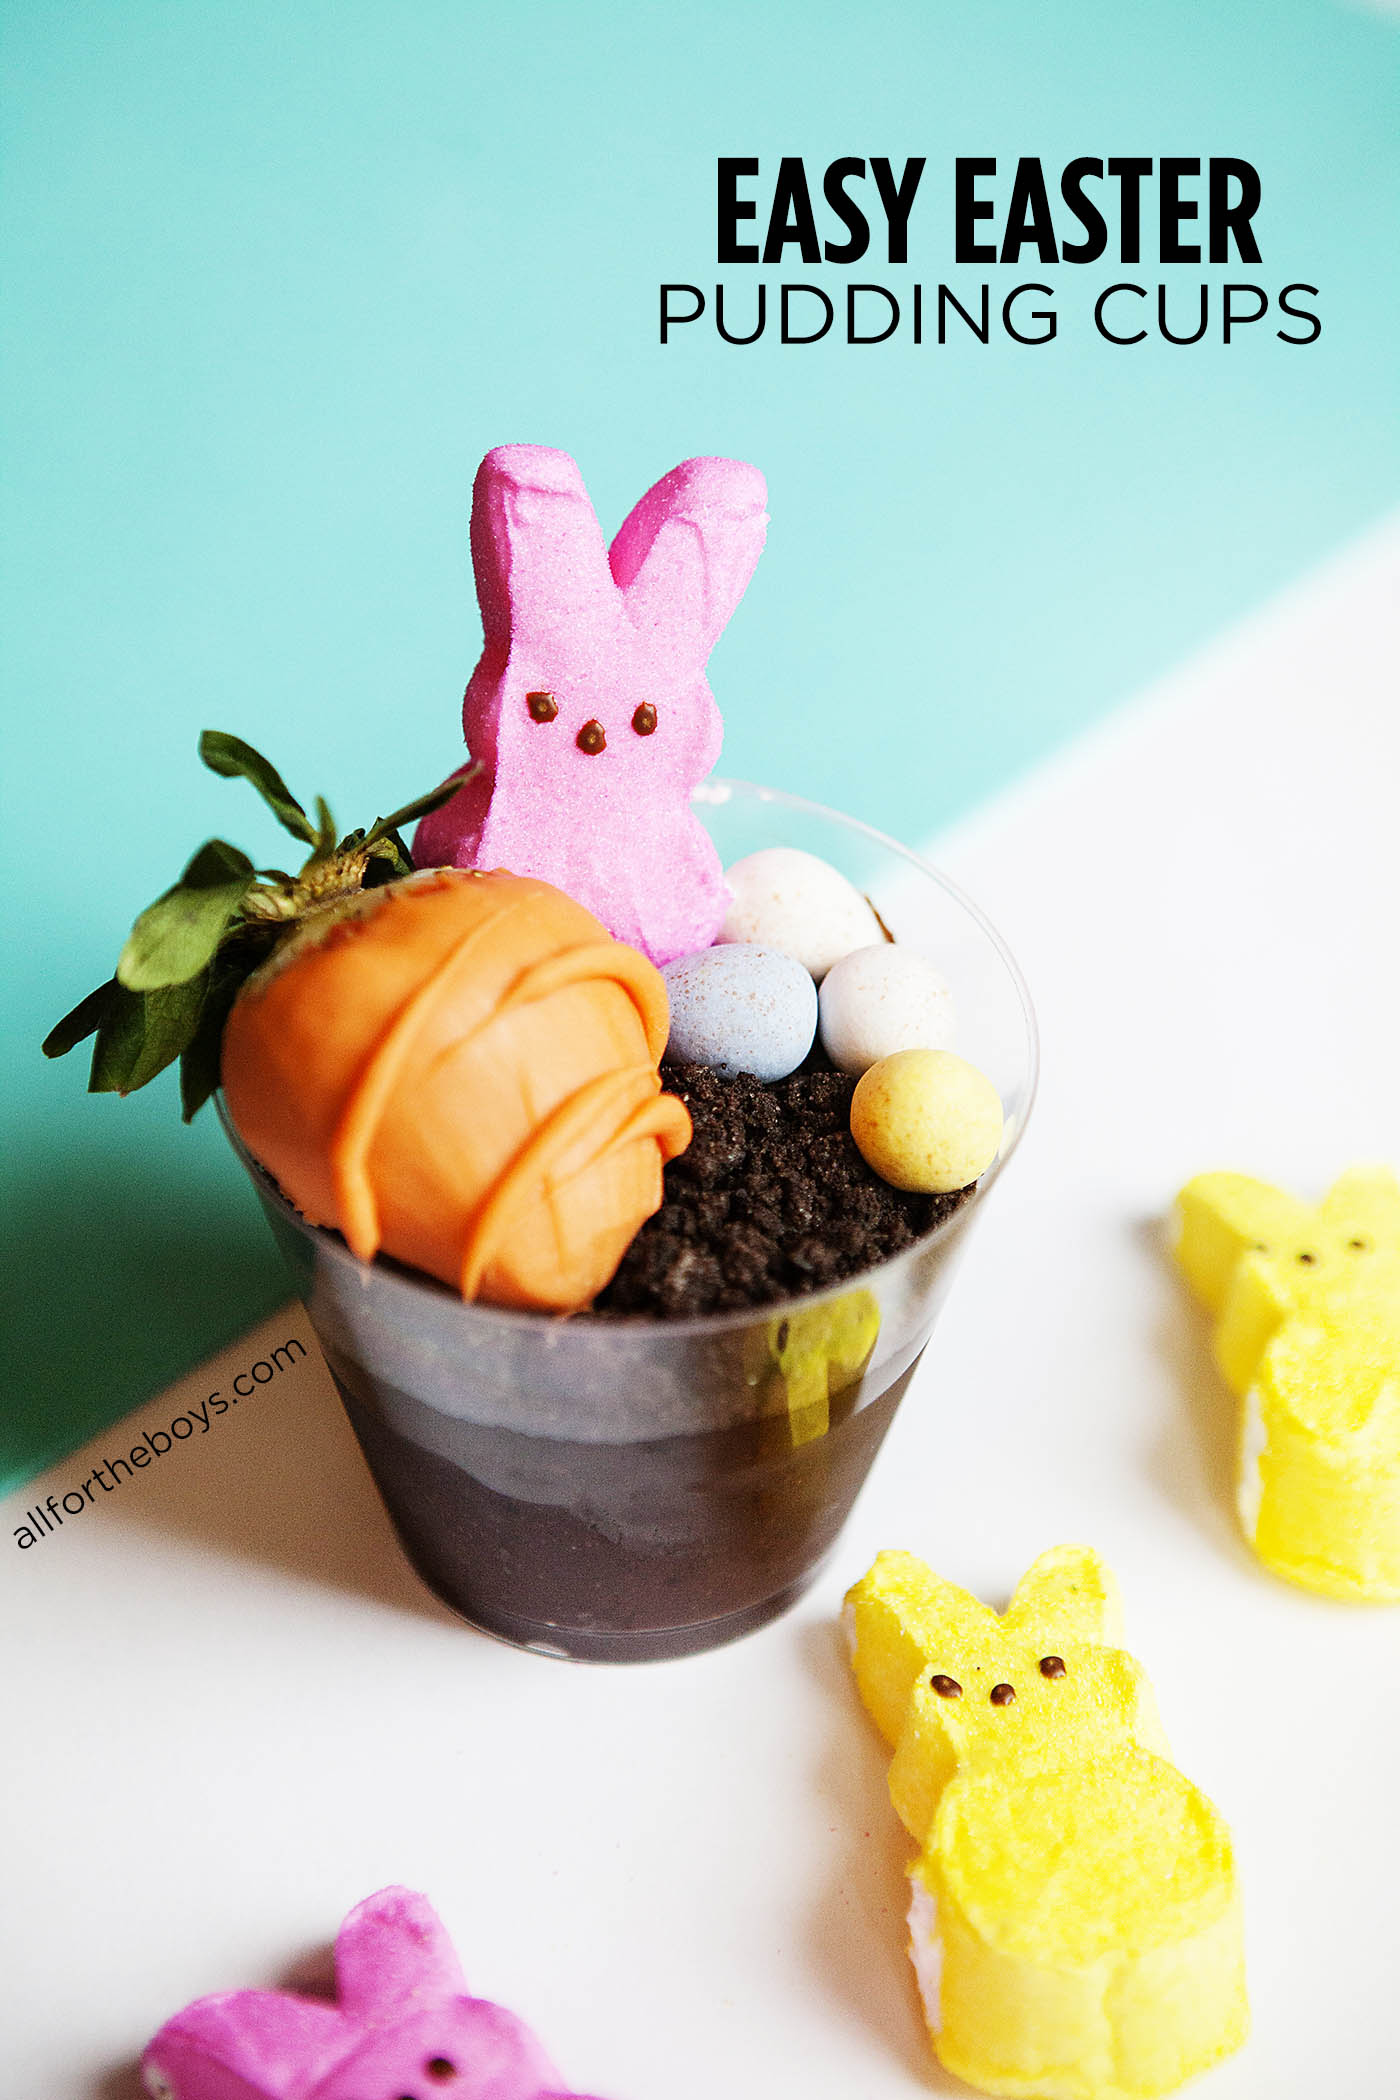 Easy Easter pudding cups - how cute are these, and they are so simple to put together!